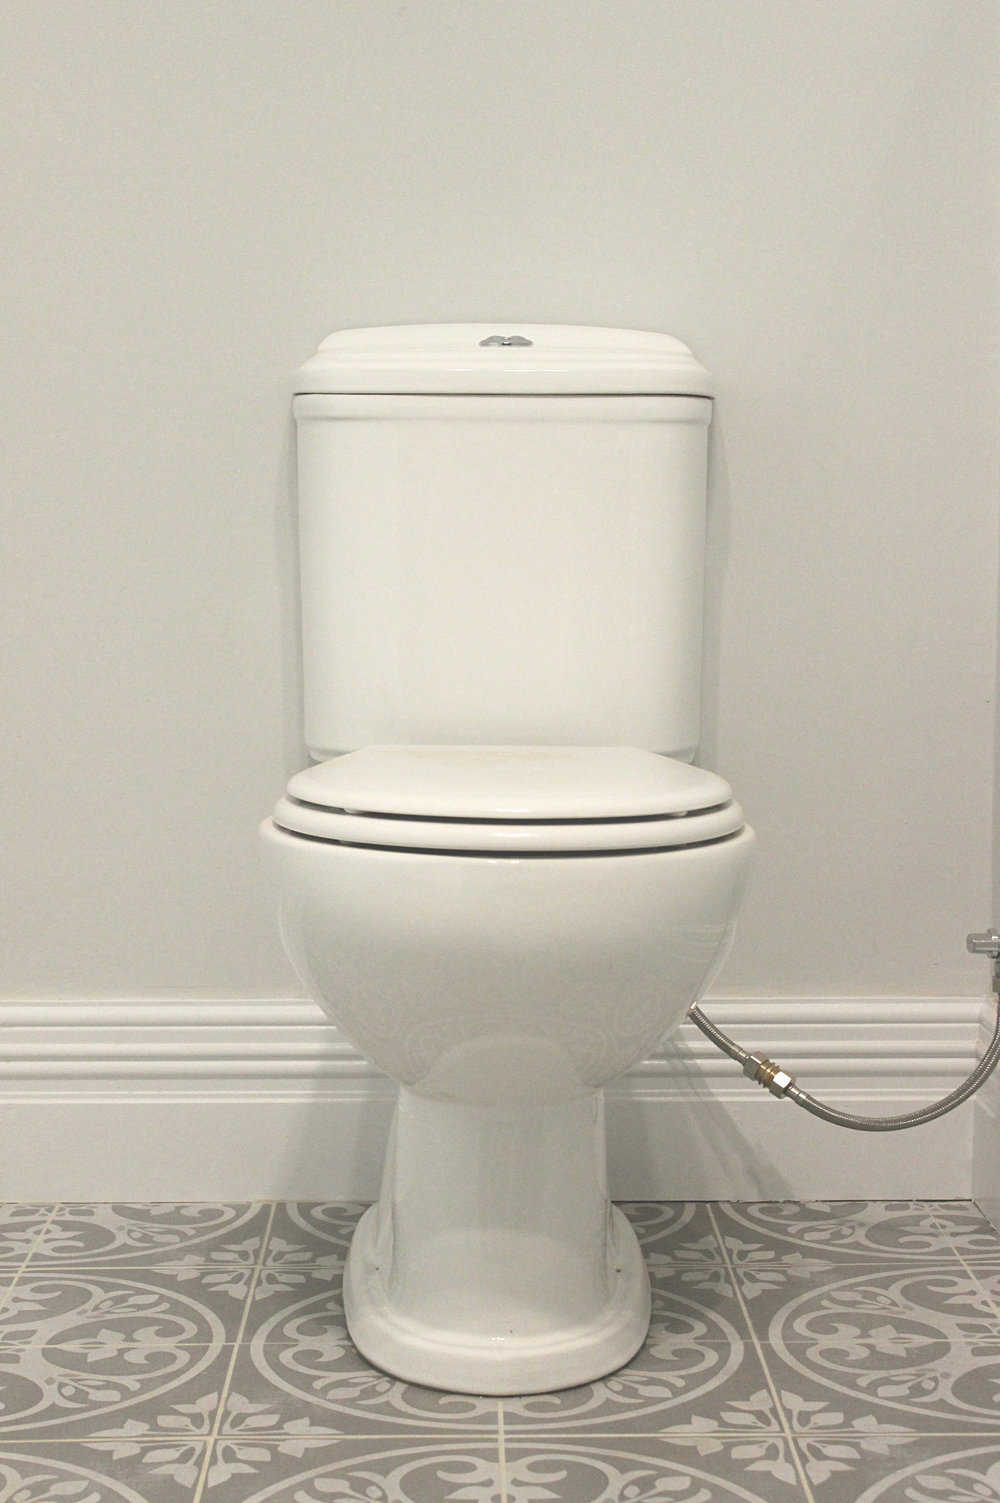 Heritage toilet with colonial skirting